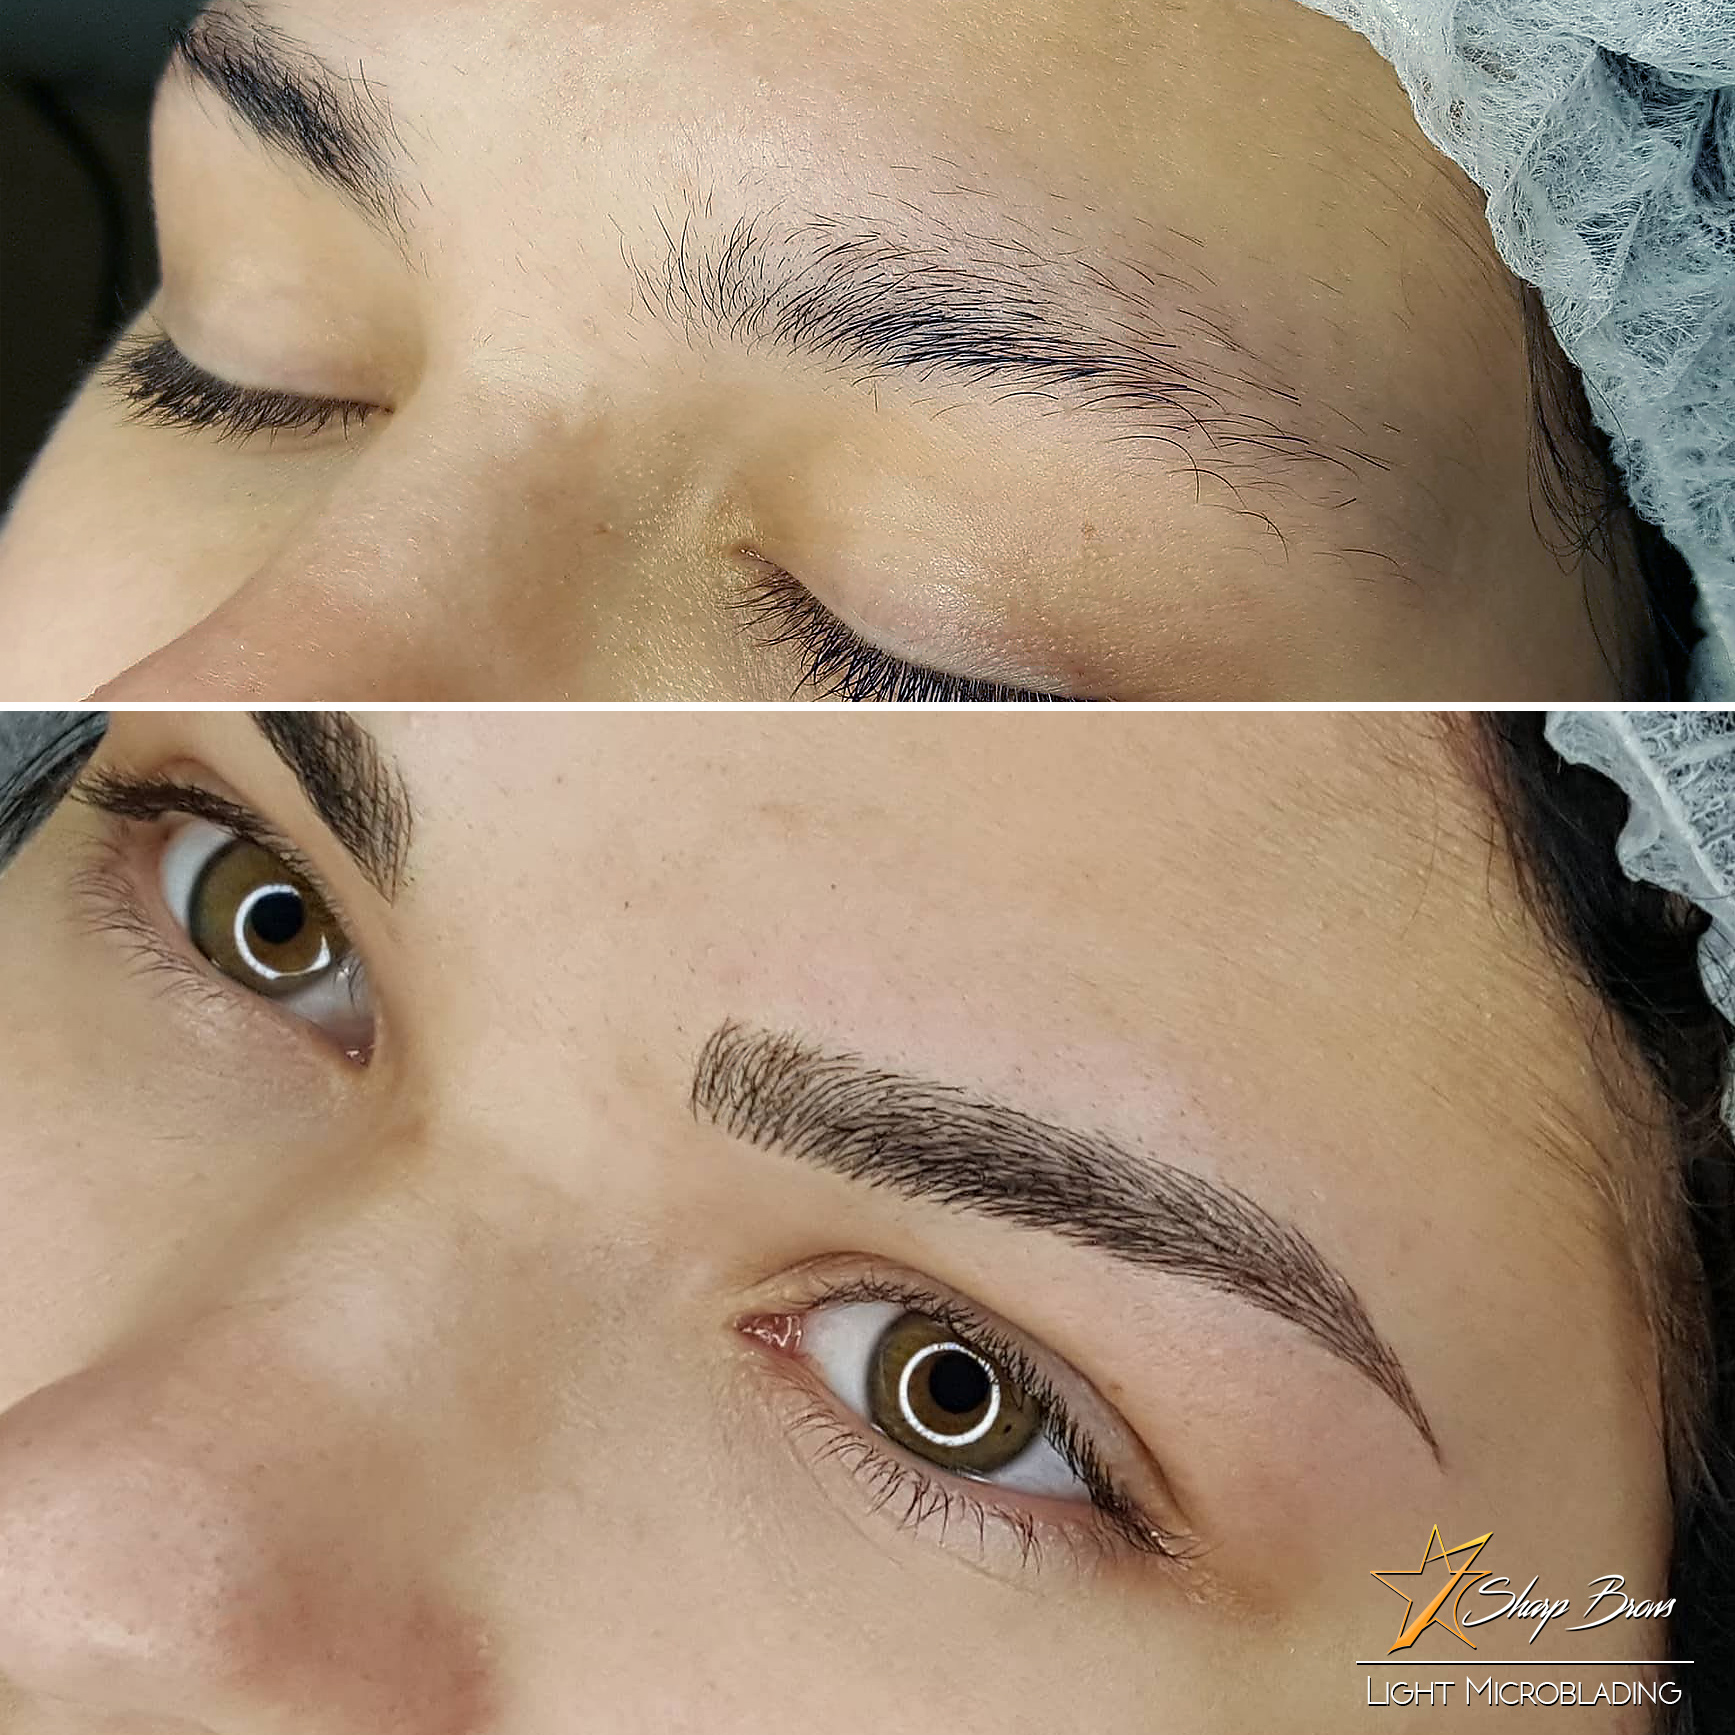 The change with Light Microblading and Precision Strokes are incredible! As a part of the treatment the excess brow hair is threaded and tweezed off. All lines are approximately 2,5 times thinner than with ordinary microblading.